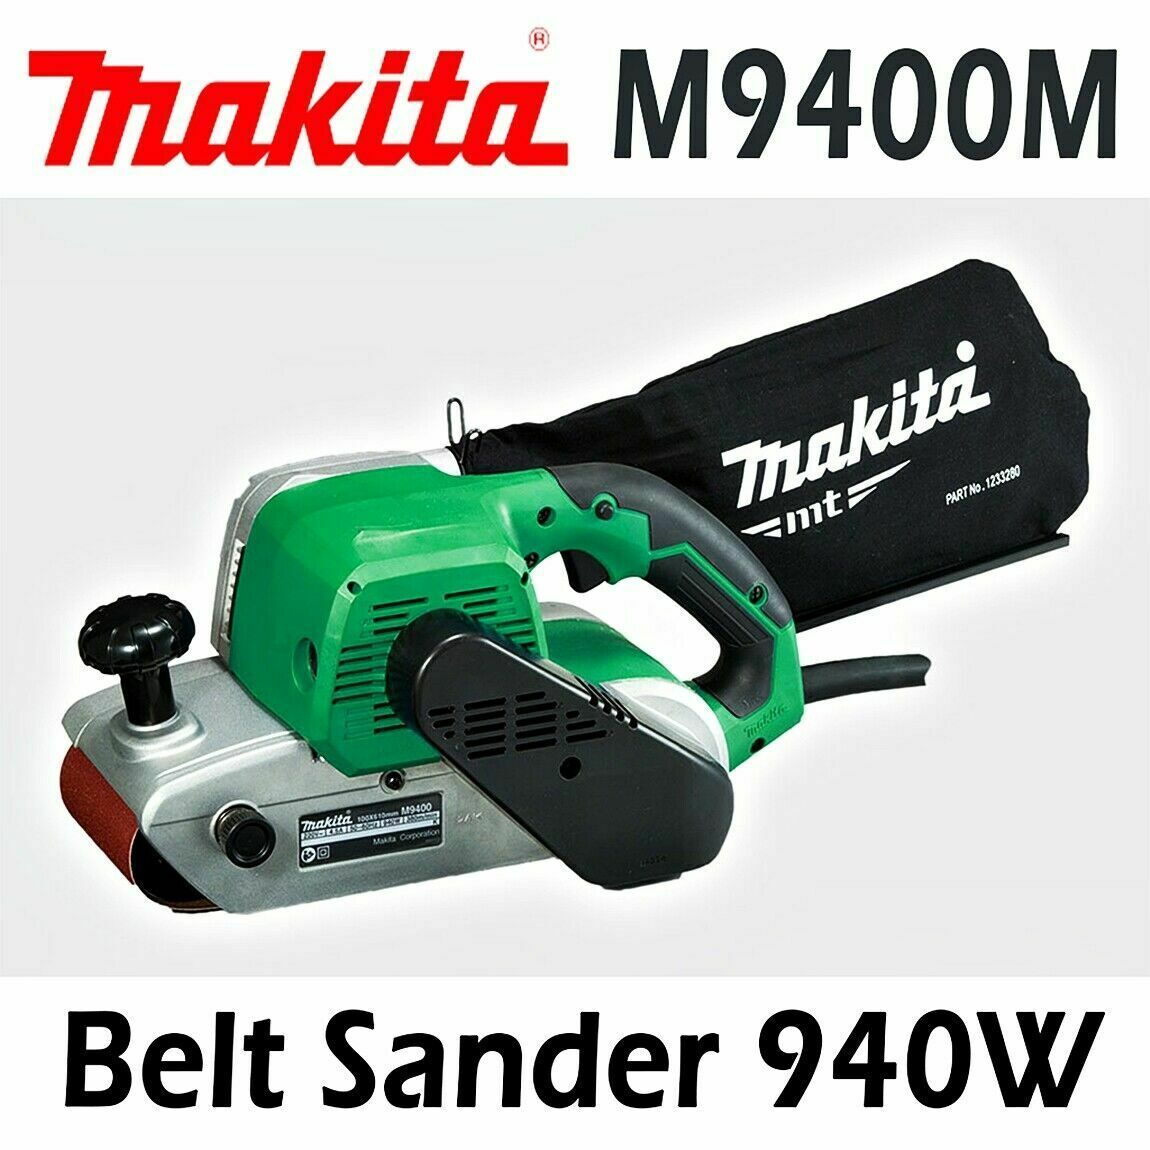 Makita M9400M Corded 100mm Belt Sander Full ball bearing / 940W 220V , Plug C